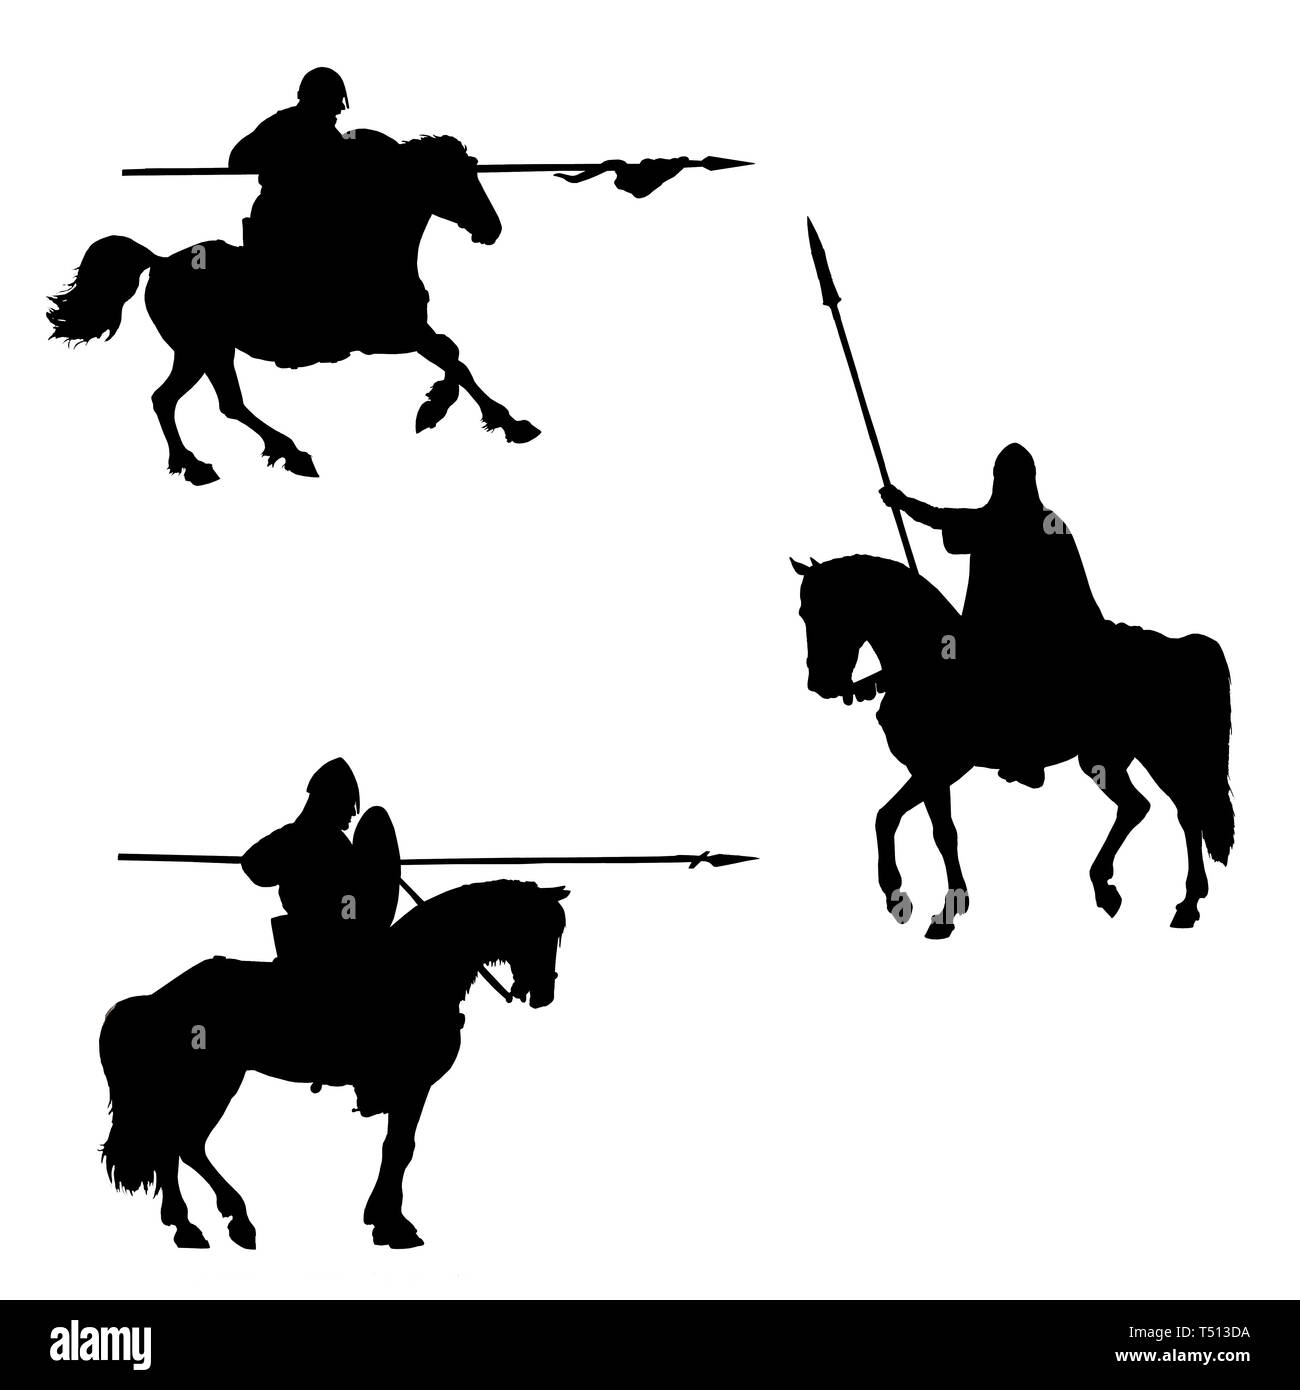 Medieval mounted knights illustration. Knight on horseback. Set of 3 medieval crusaders. Black and white digital drawing. Knights silhouette. - Stock Image